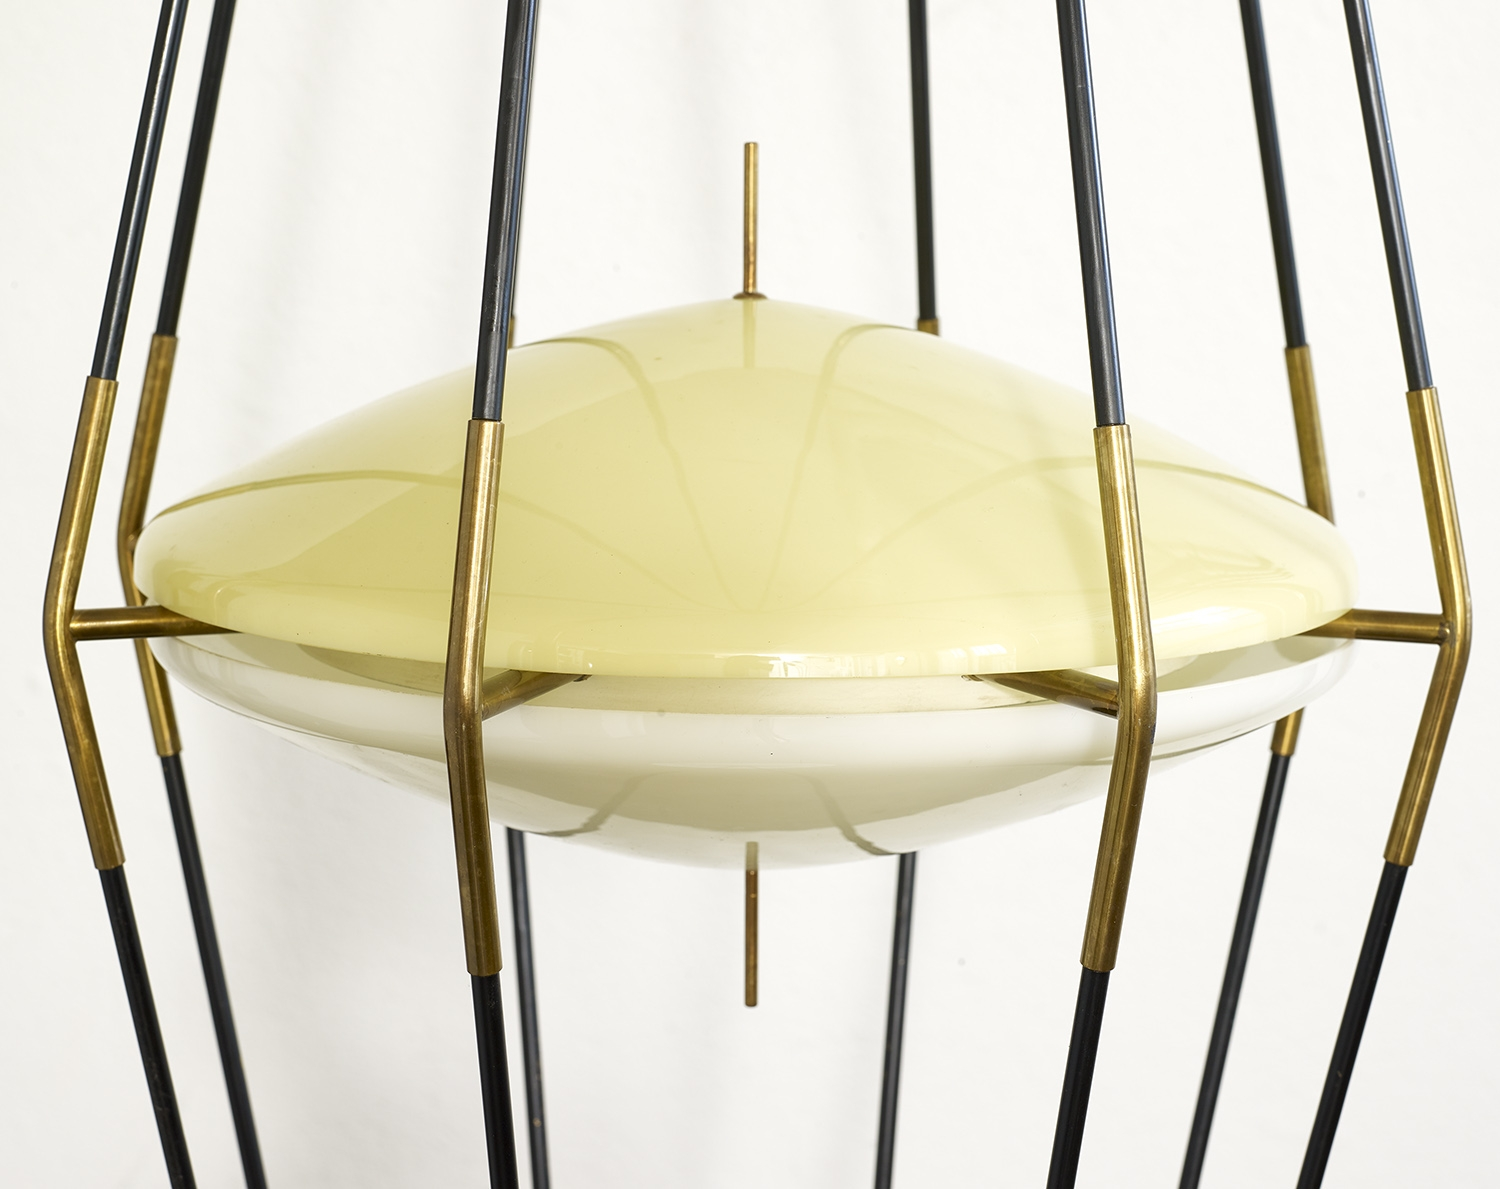 rare-model-12628-siluro-floor-lamp-by-angelo-lelii-for-arredoluce-1957-image-03